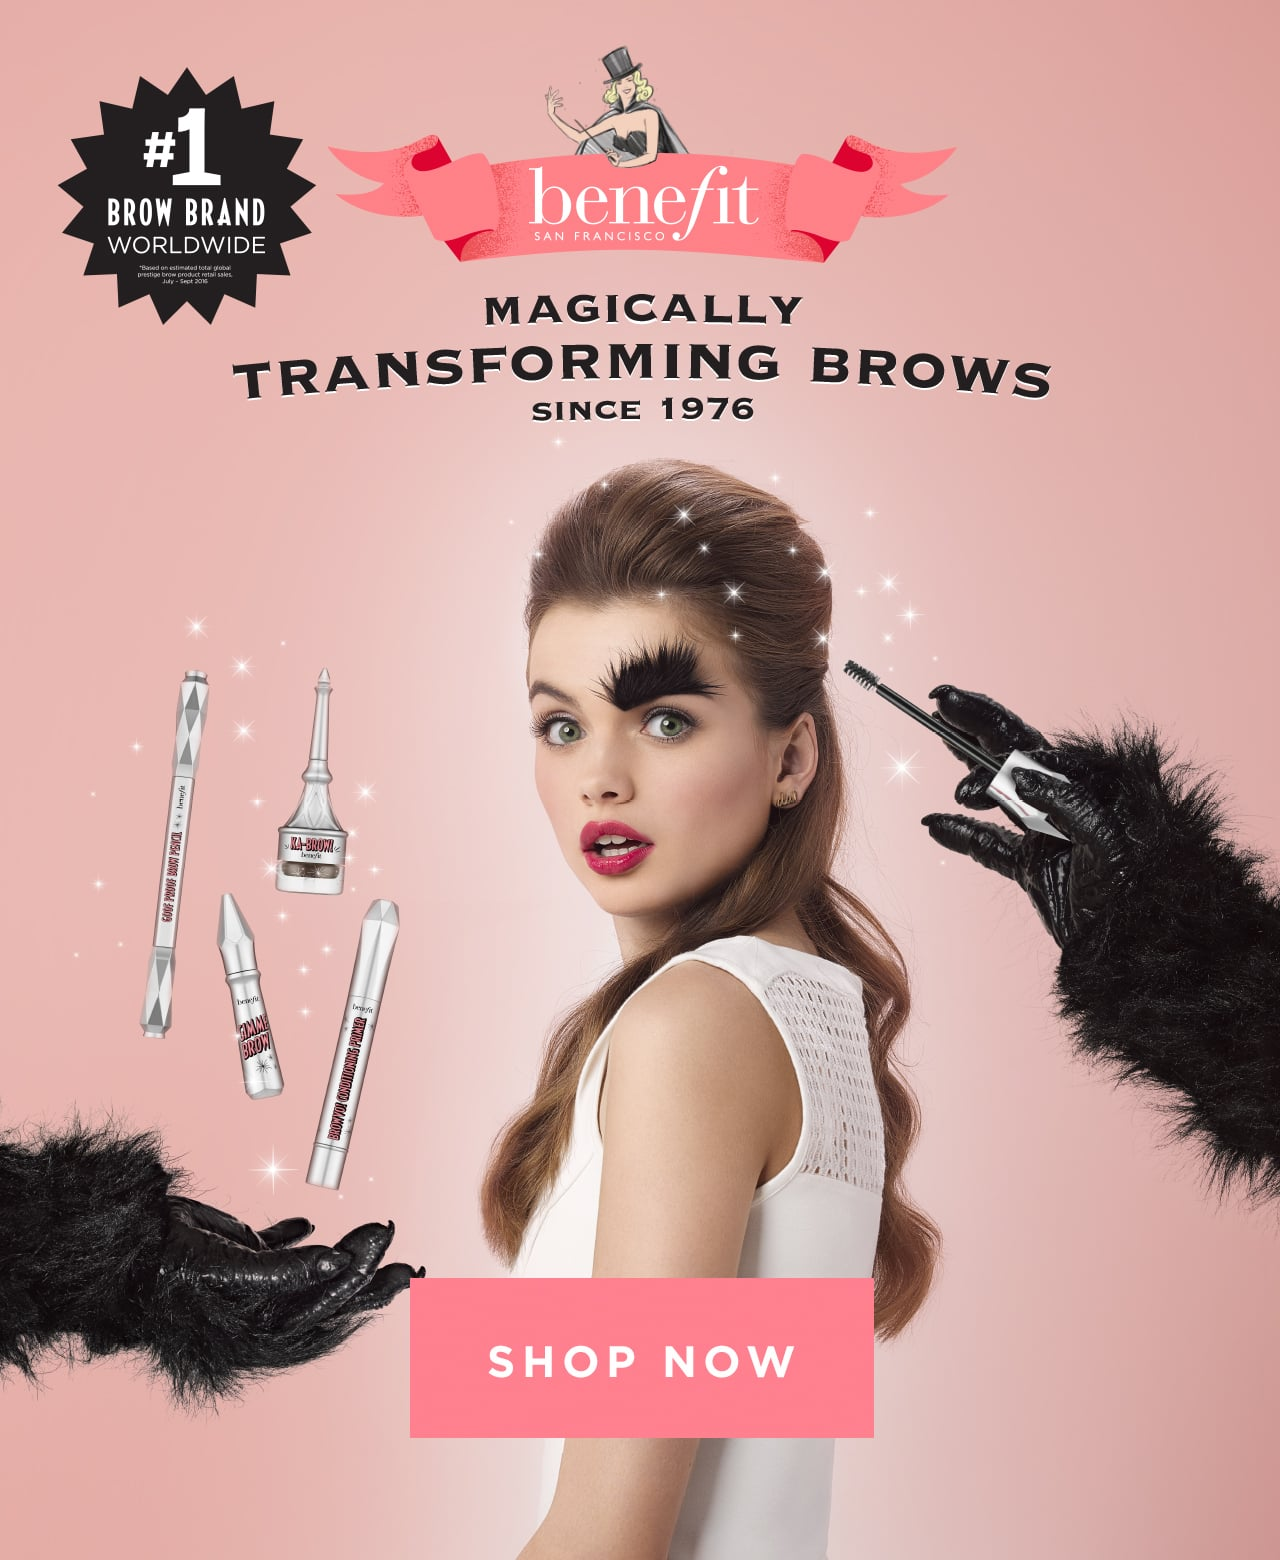 Benefit - #1 Brow Brand worldwide. Shop Benefit Magically Transform Brows